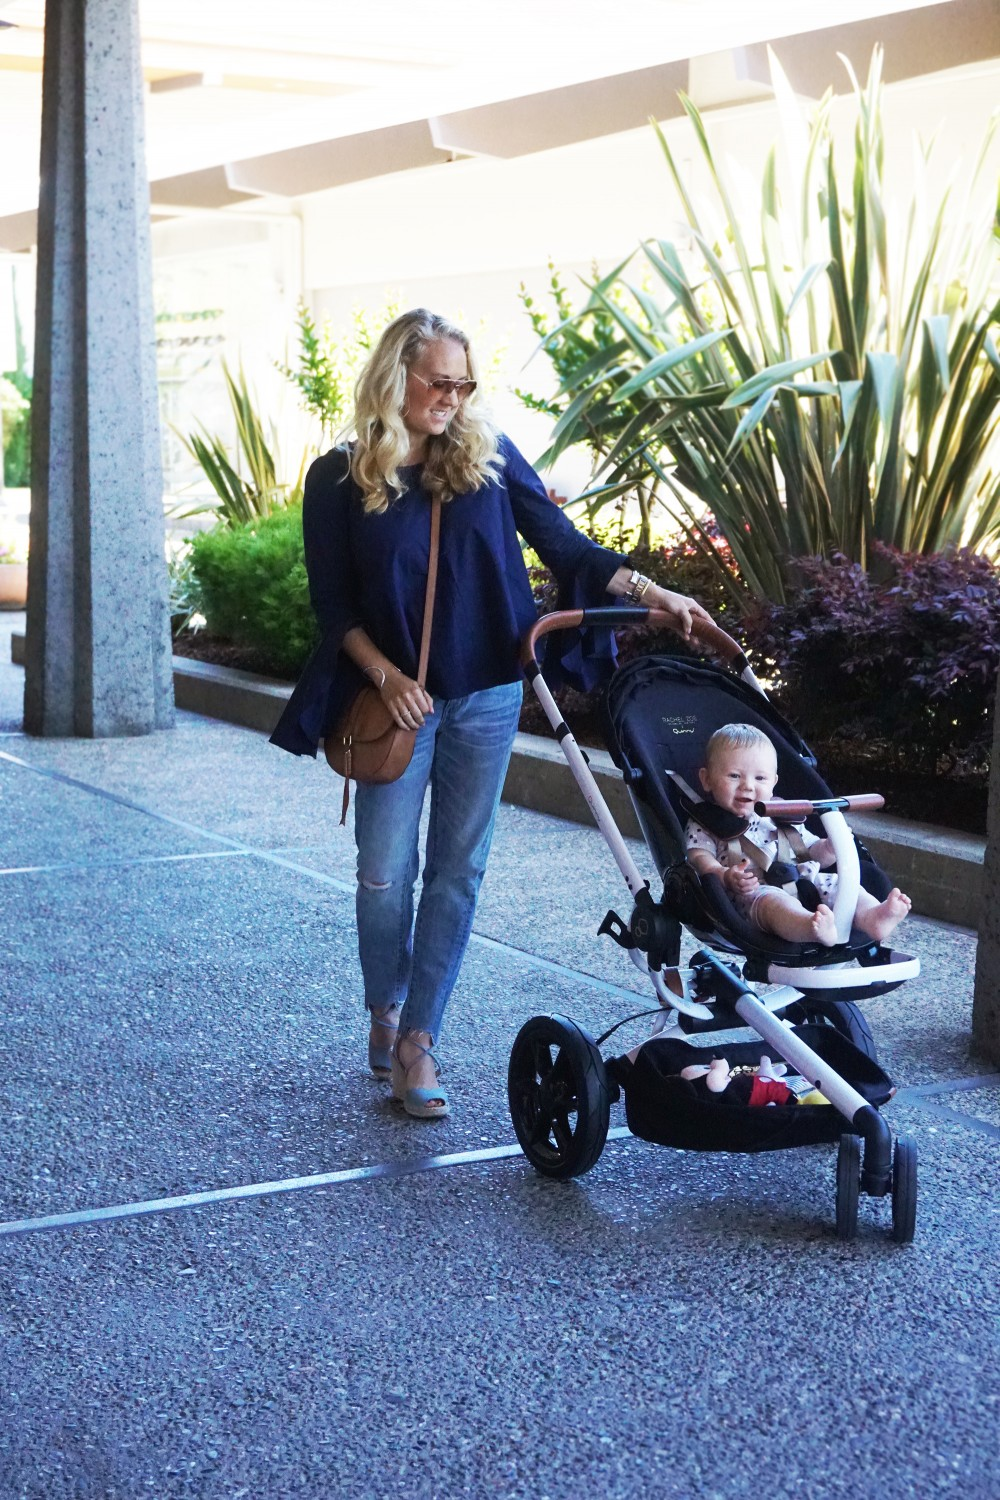 Review of Rachel Zoe x Quinny Moodd Stroller-Quinny Moodd Stroller-Modern Stroller-It Stroller for 2017-Chic Baby Stroller-Have Need Want-Baby Registry List Products-Baby Registry Must Have Item 10